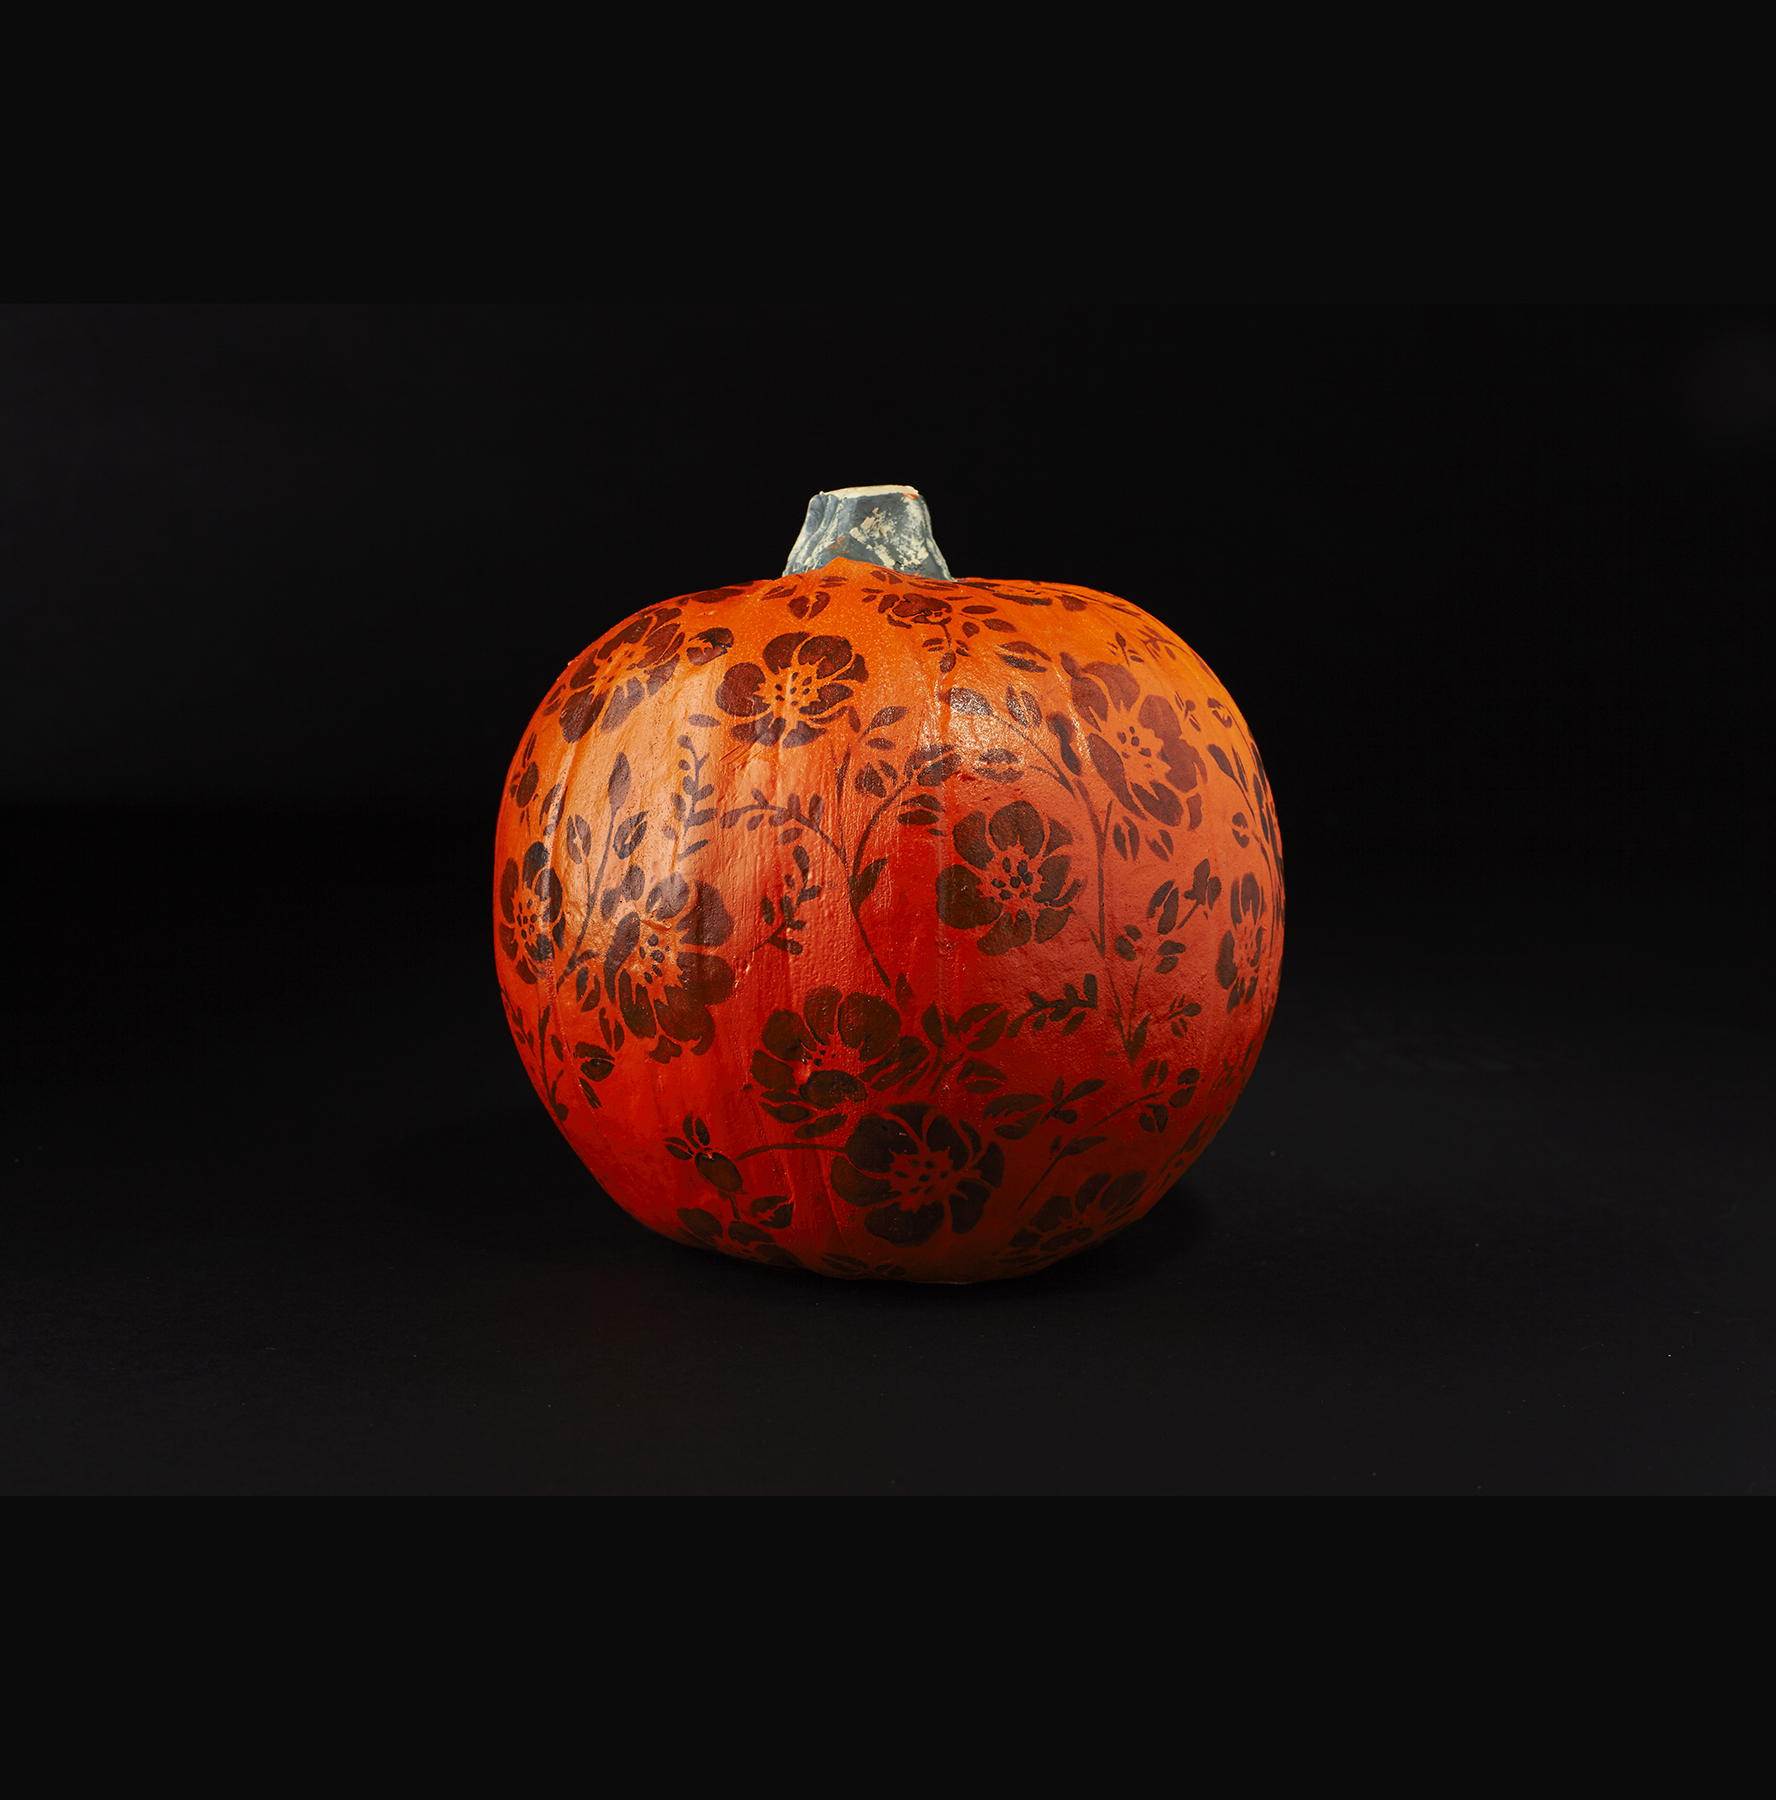 DIY Pumpkin Painting Ideas That Are Way Easier Than